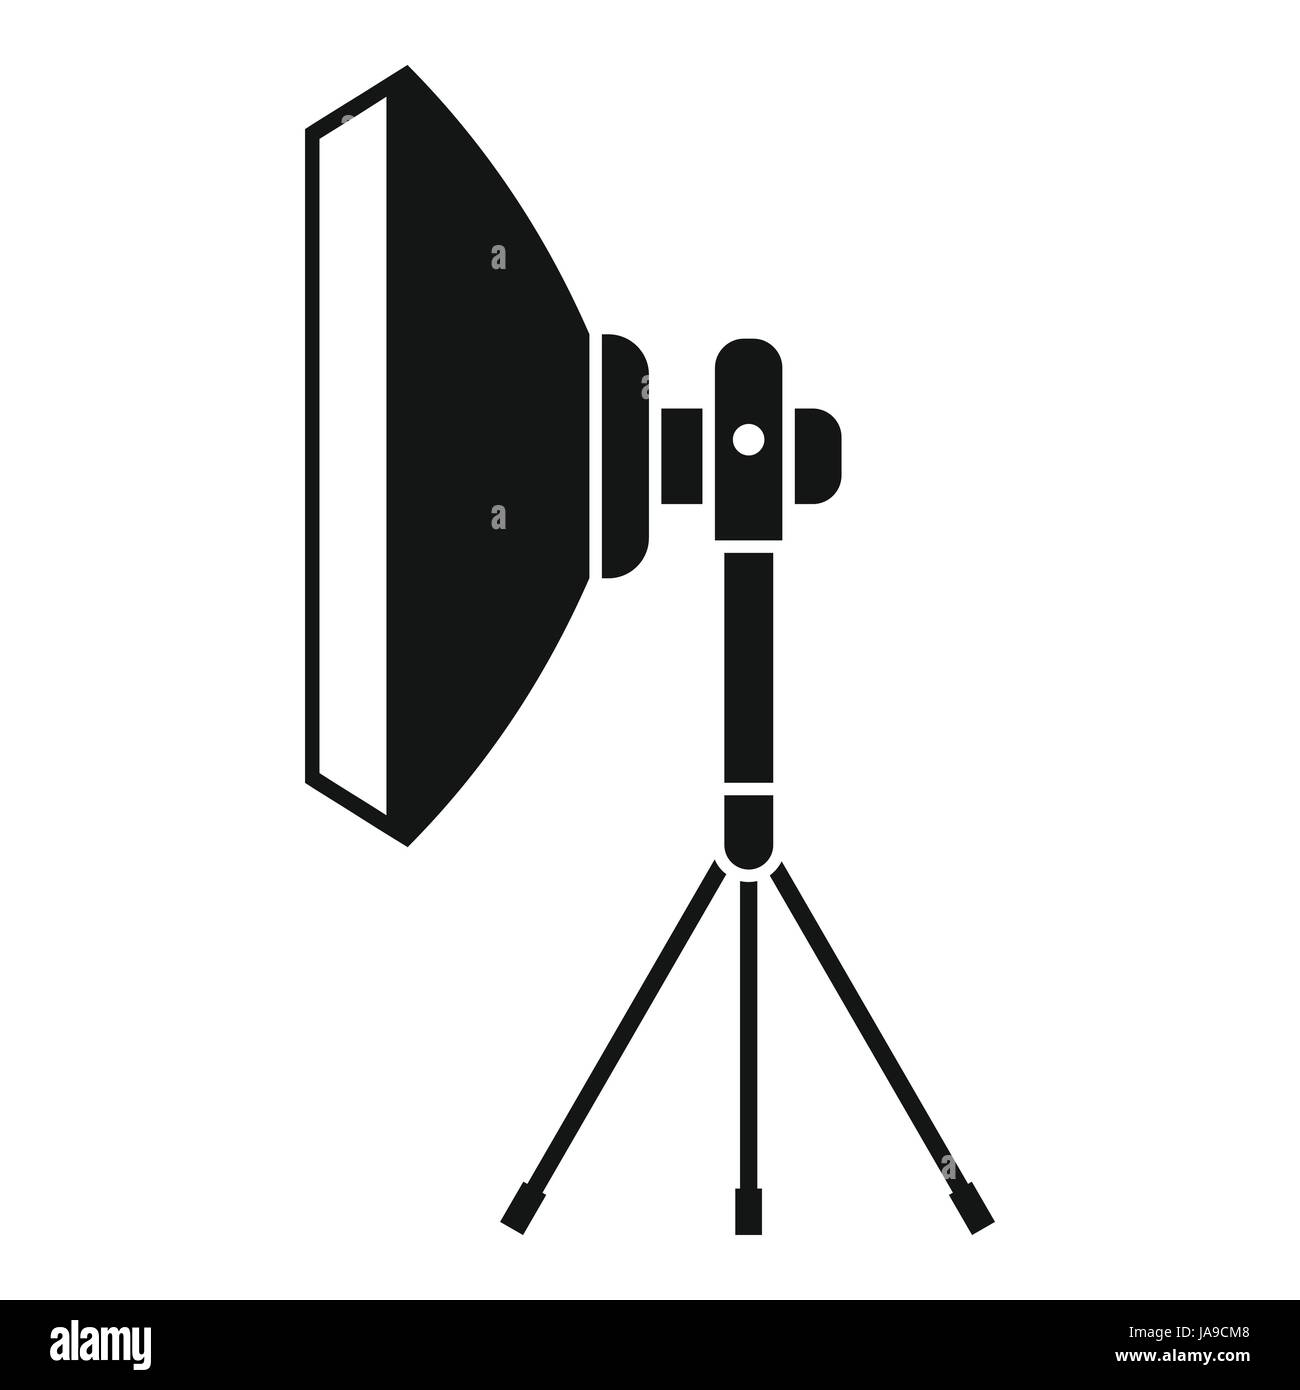 image white shutterstock equipment blank and stock background studio lighting photography vector for professional